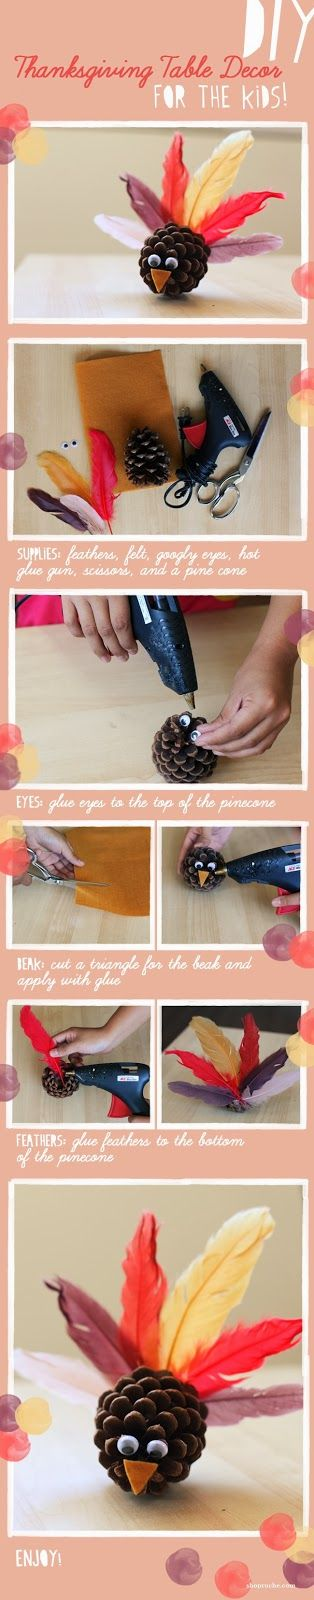 DIY Thanksgiving Pinecone Turkey Decorations